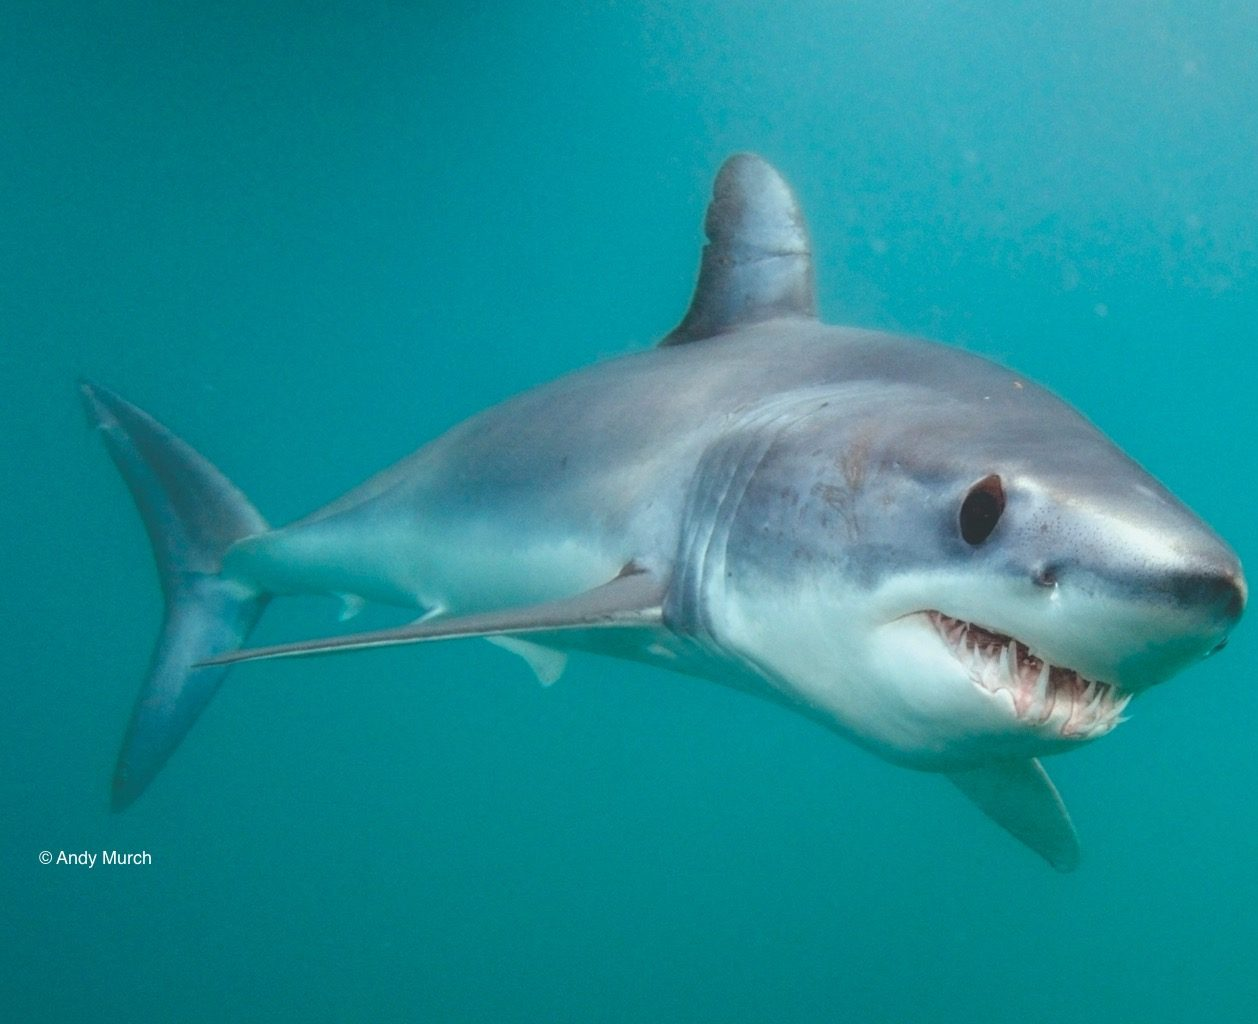 Petition: Stop uncontrolled shark fishing now!